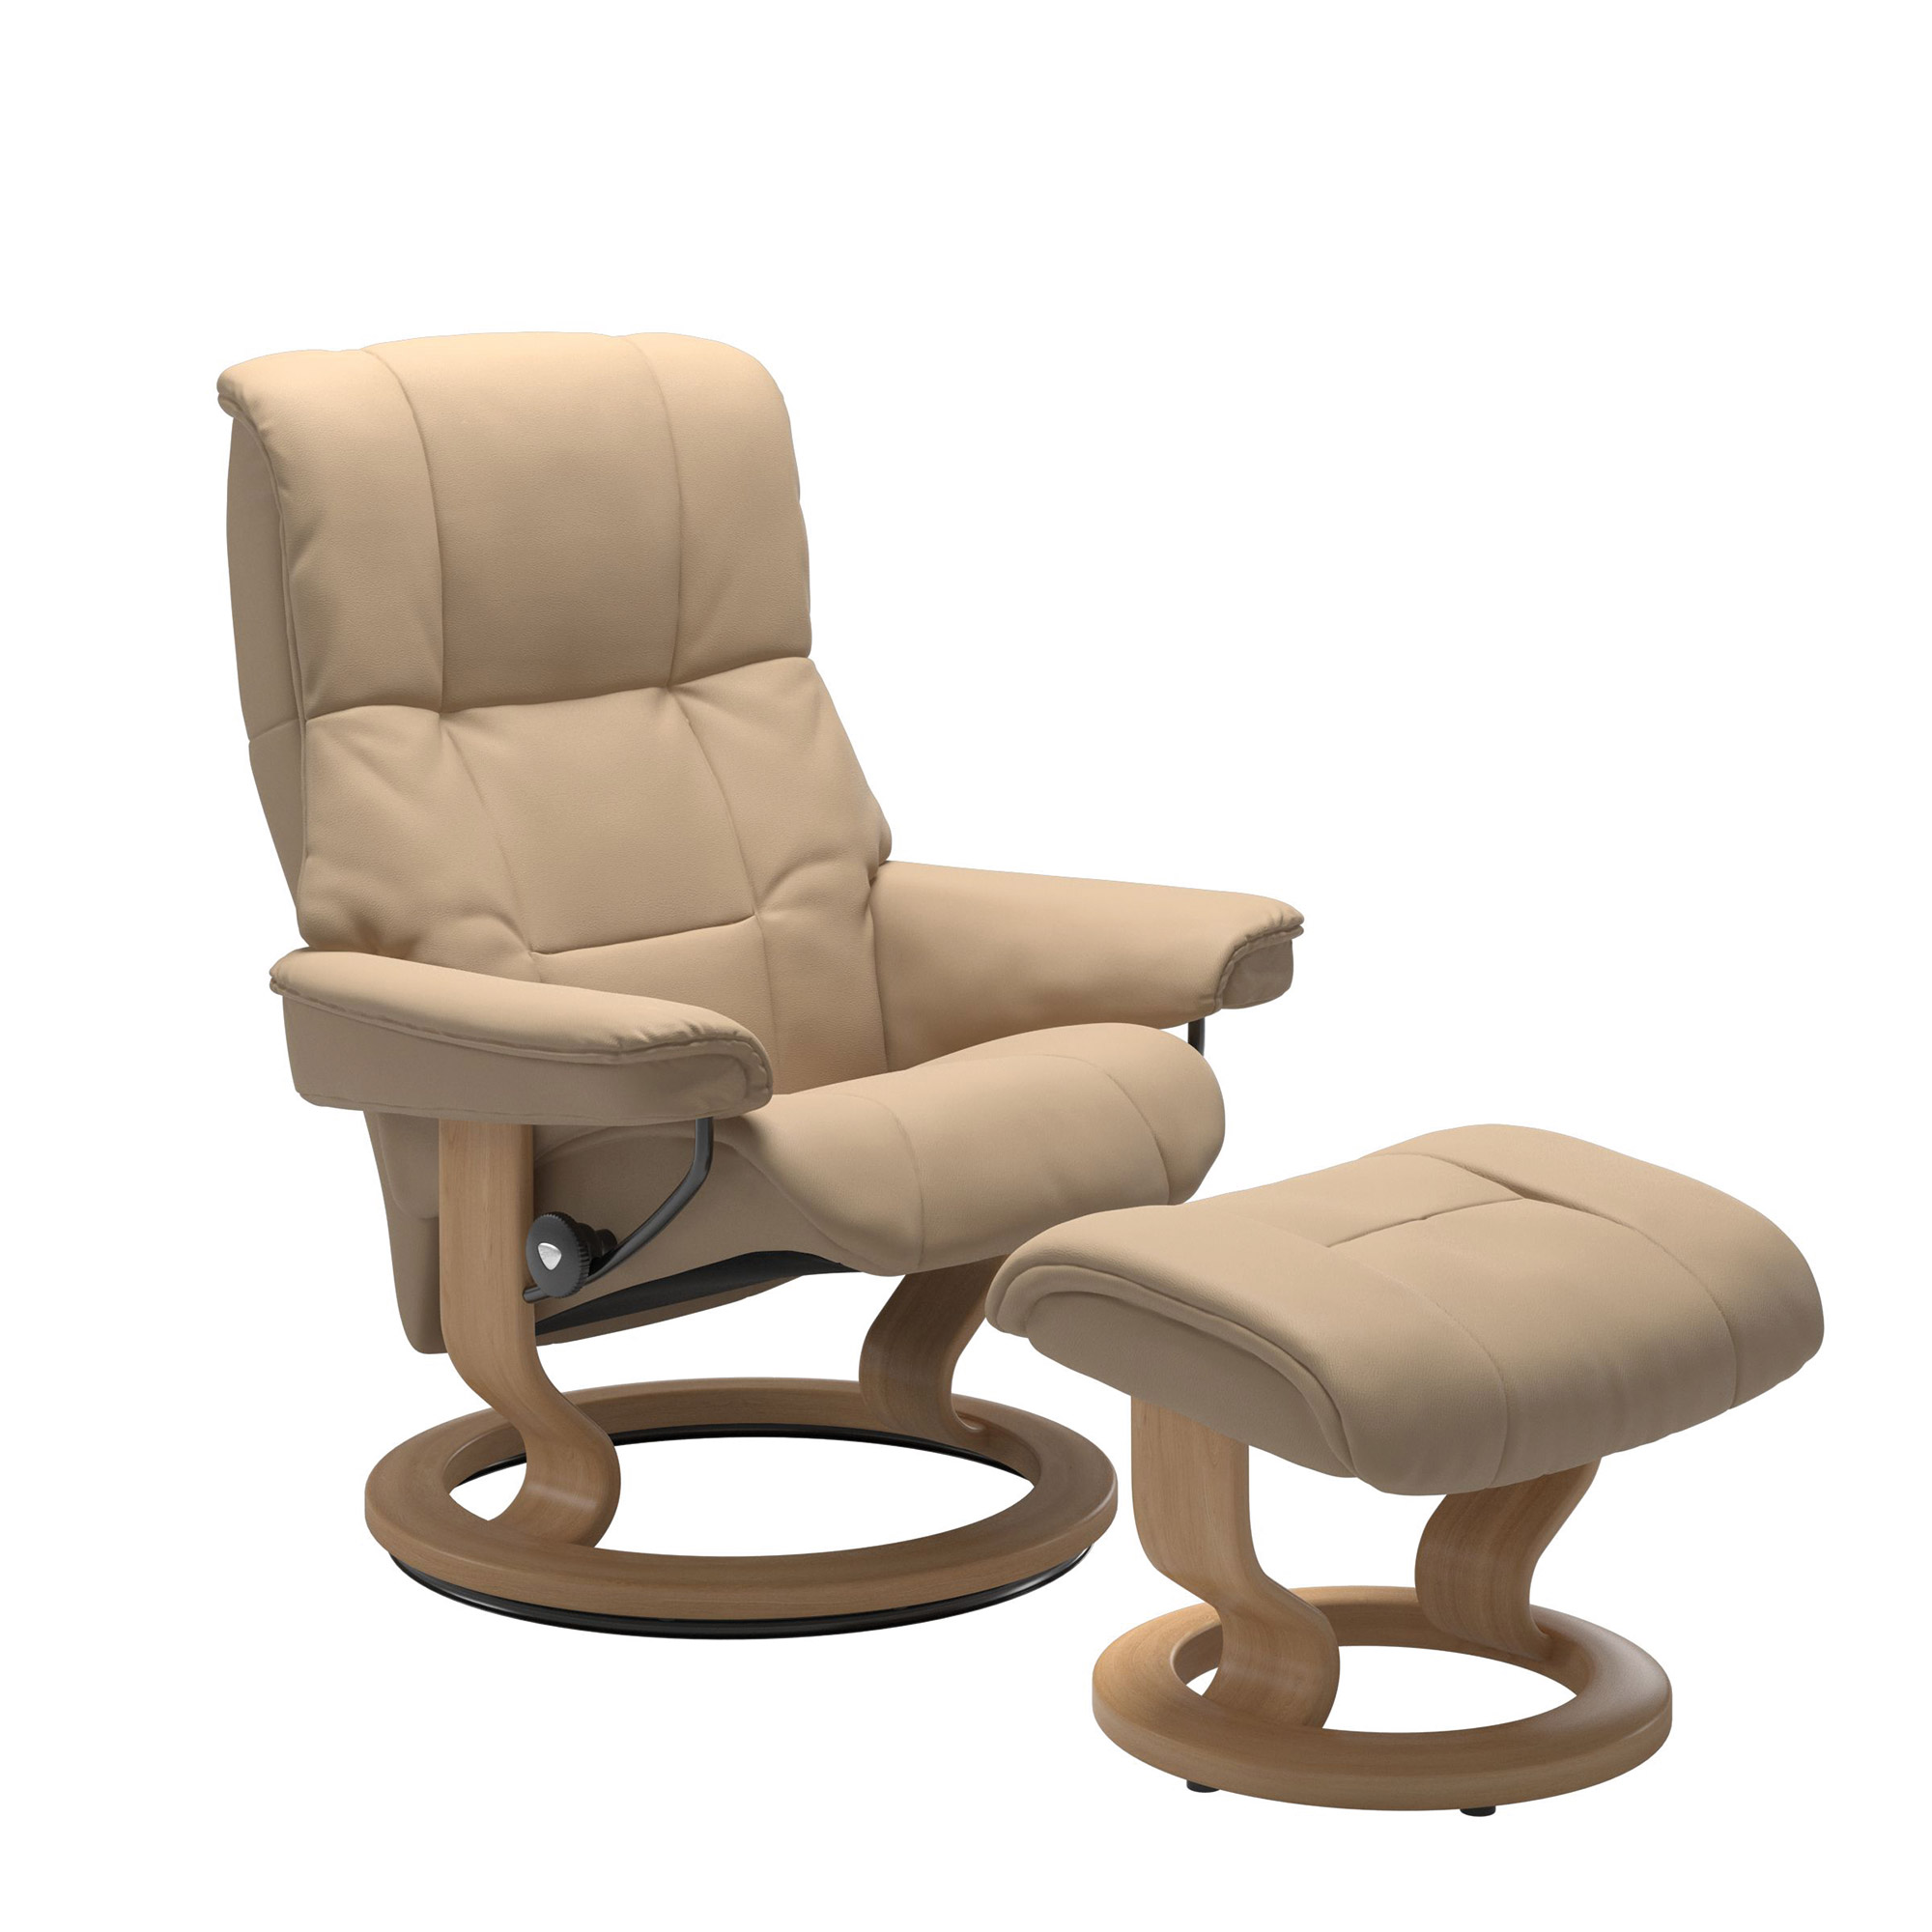 Picture of: Stressless Chairs Stressless Mayfair Large Chair Footstool Recliner Chairs Fishpools